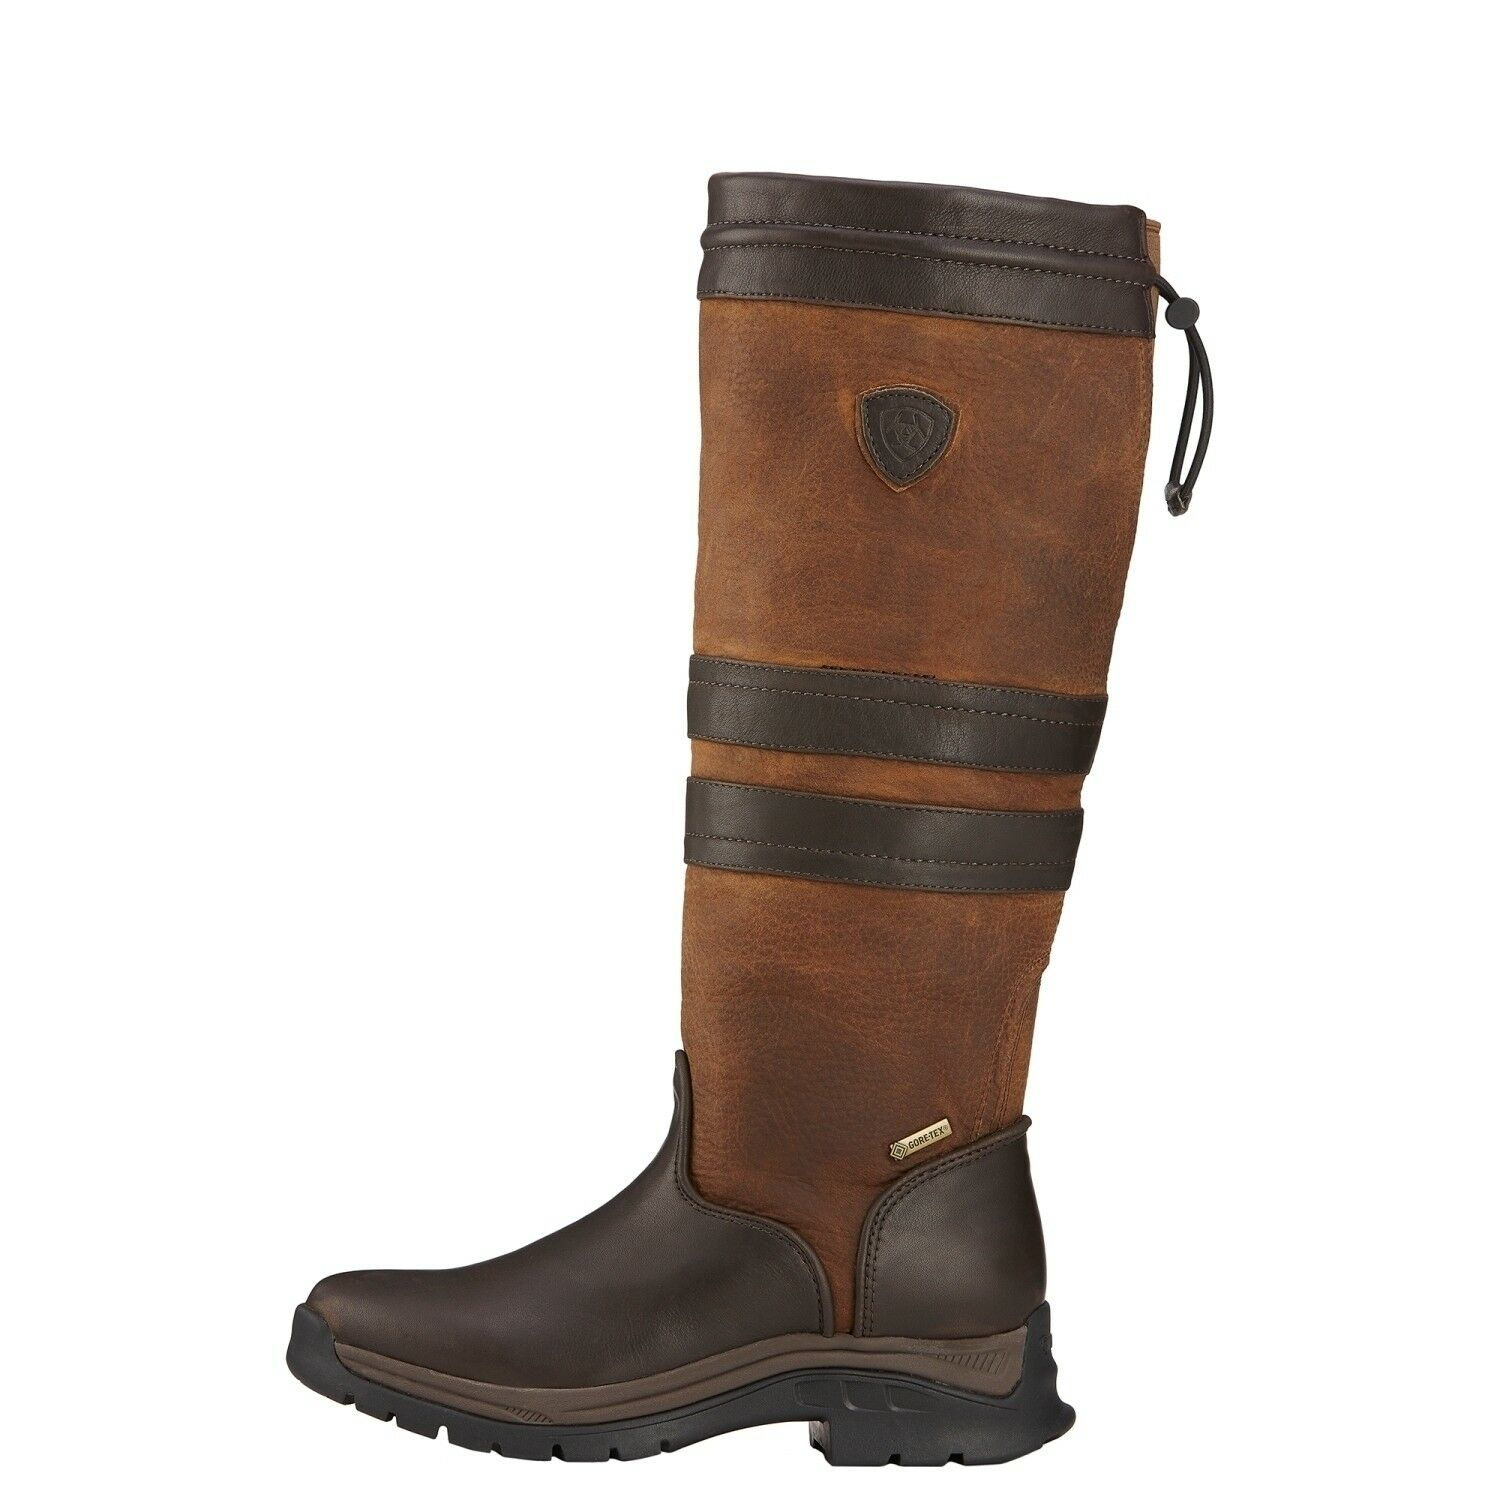 Ariat Womens Braemar Gtx Country Boots - Non Insulated